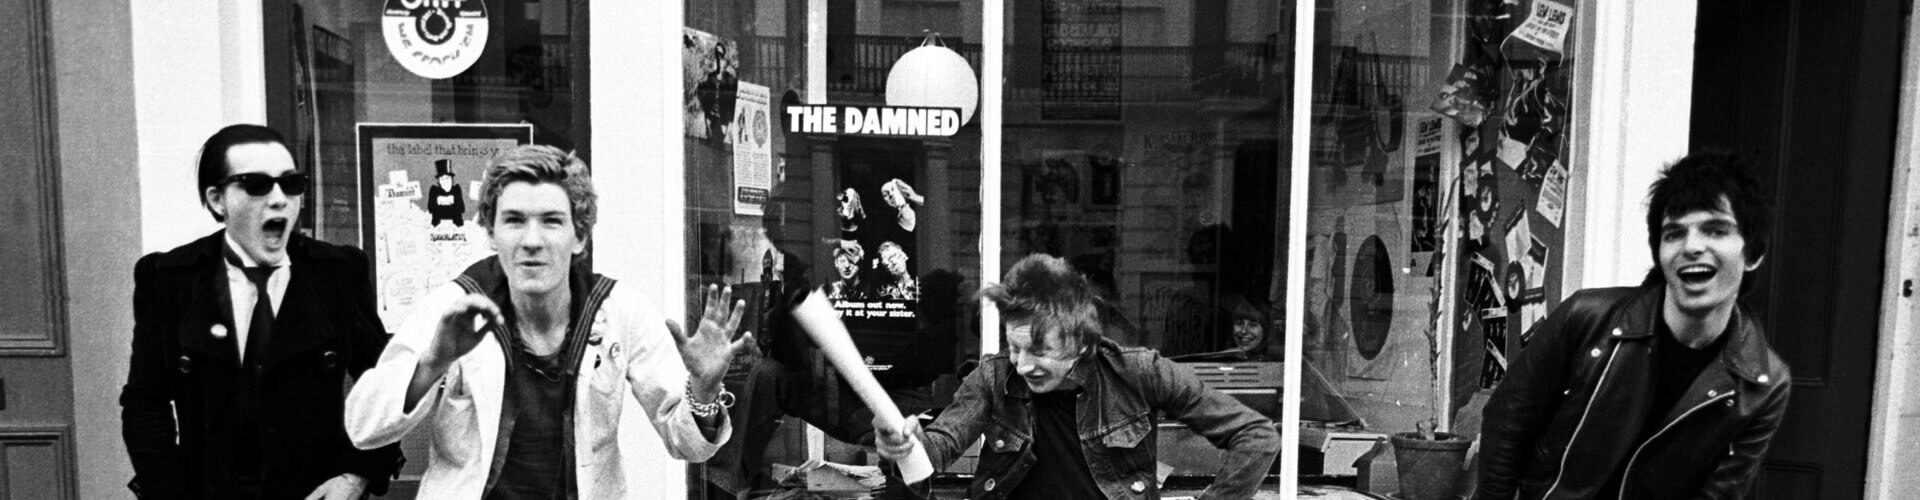 Watch The Damned: Don't You Wish... Online